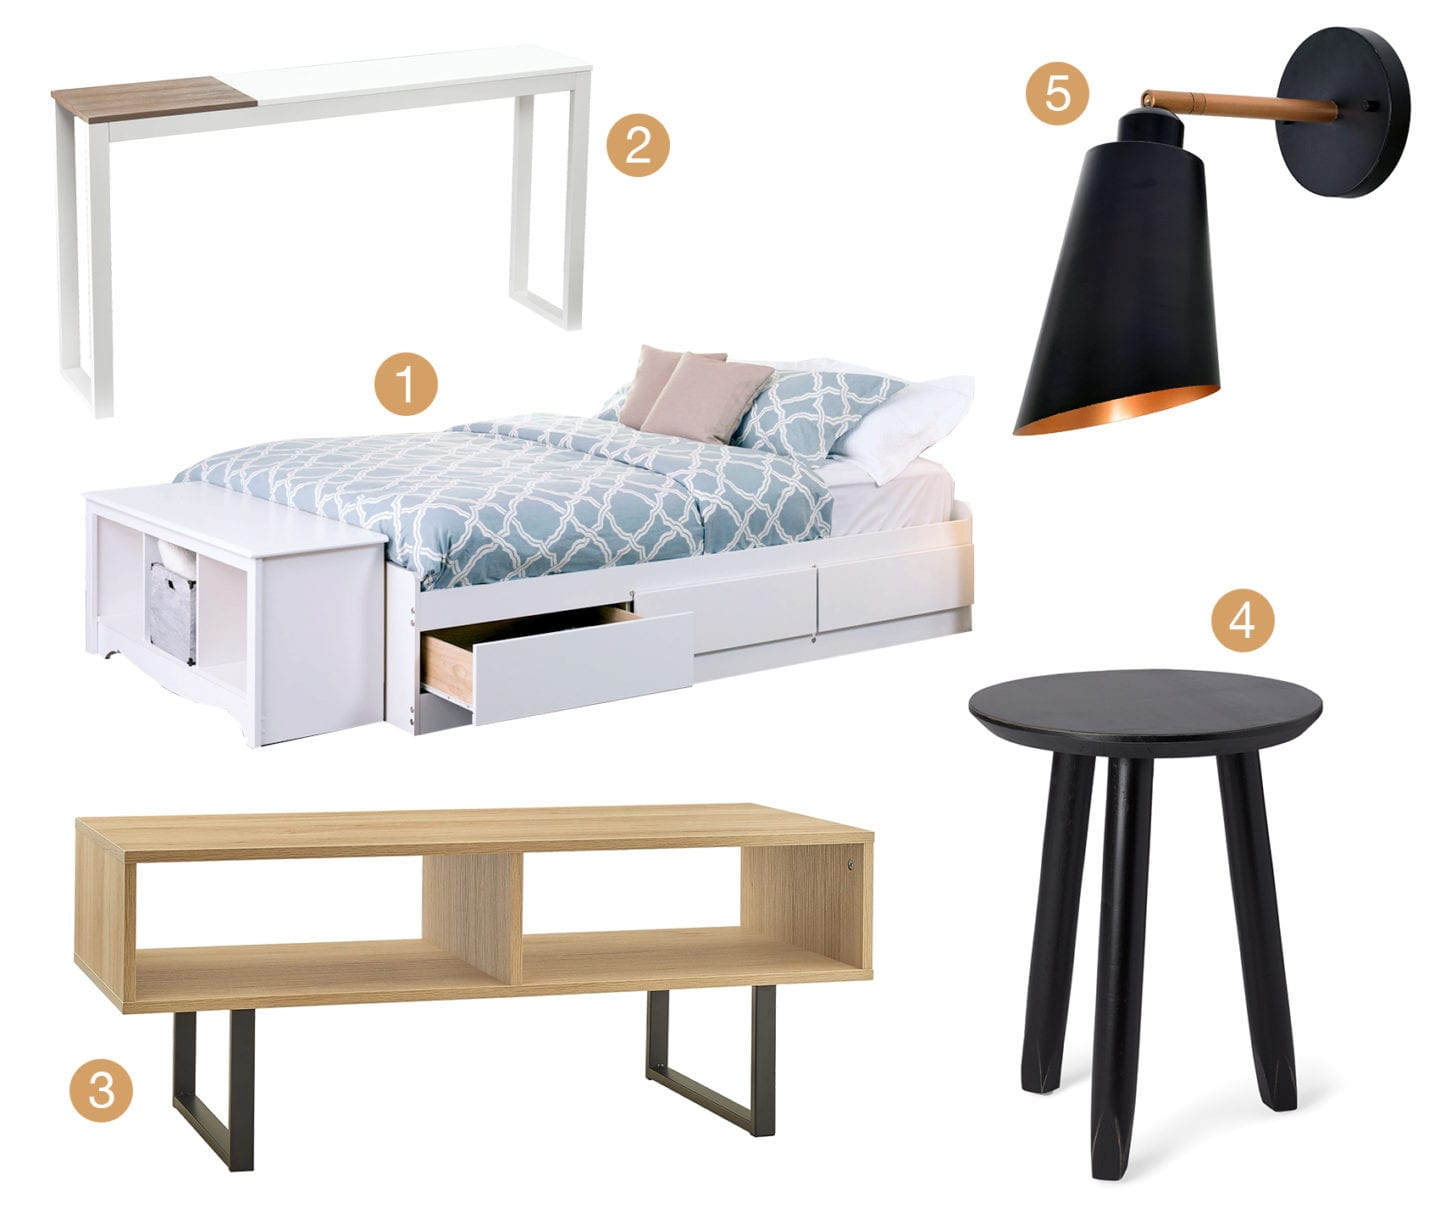 Collage of Minimalist style bedroom furniture and decor.